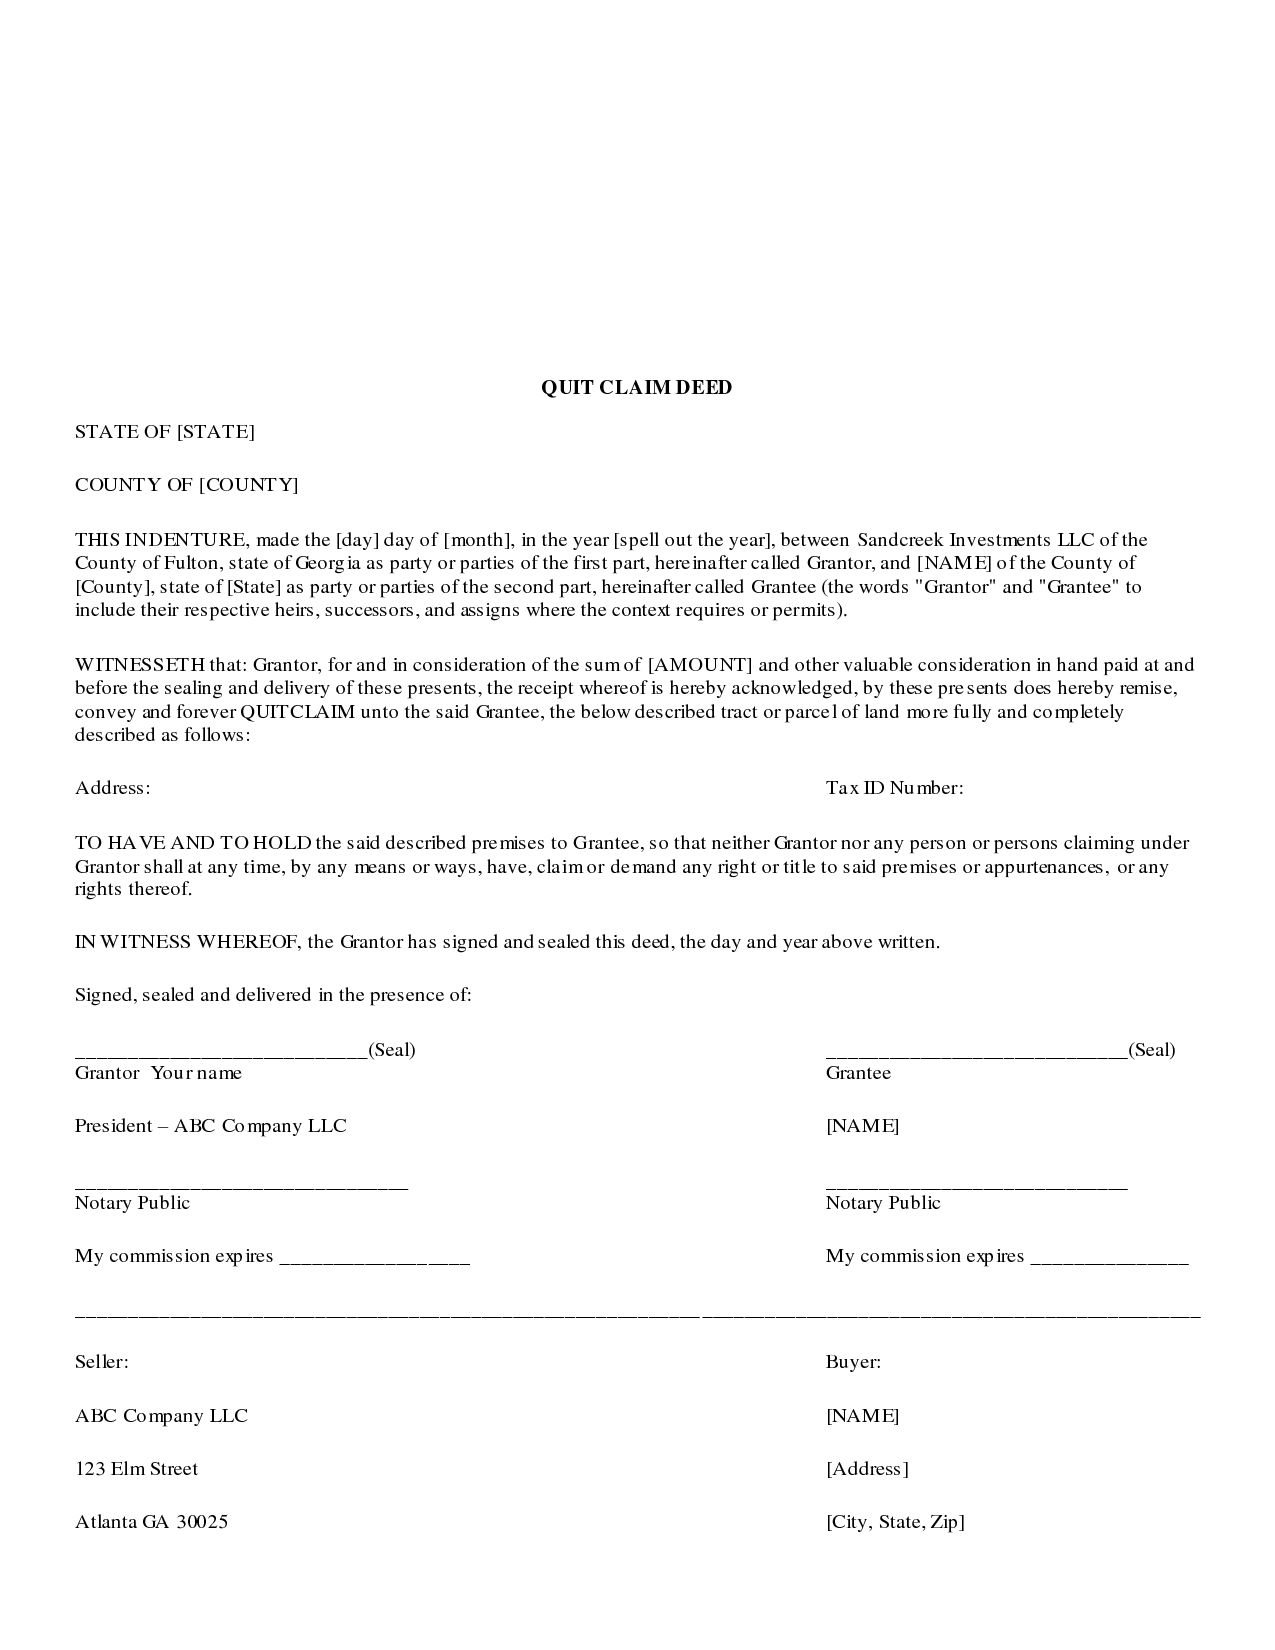 Quit Claim Deed Form Free Download | Tat News - deed template ...